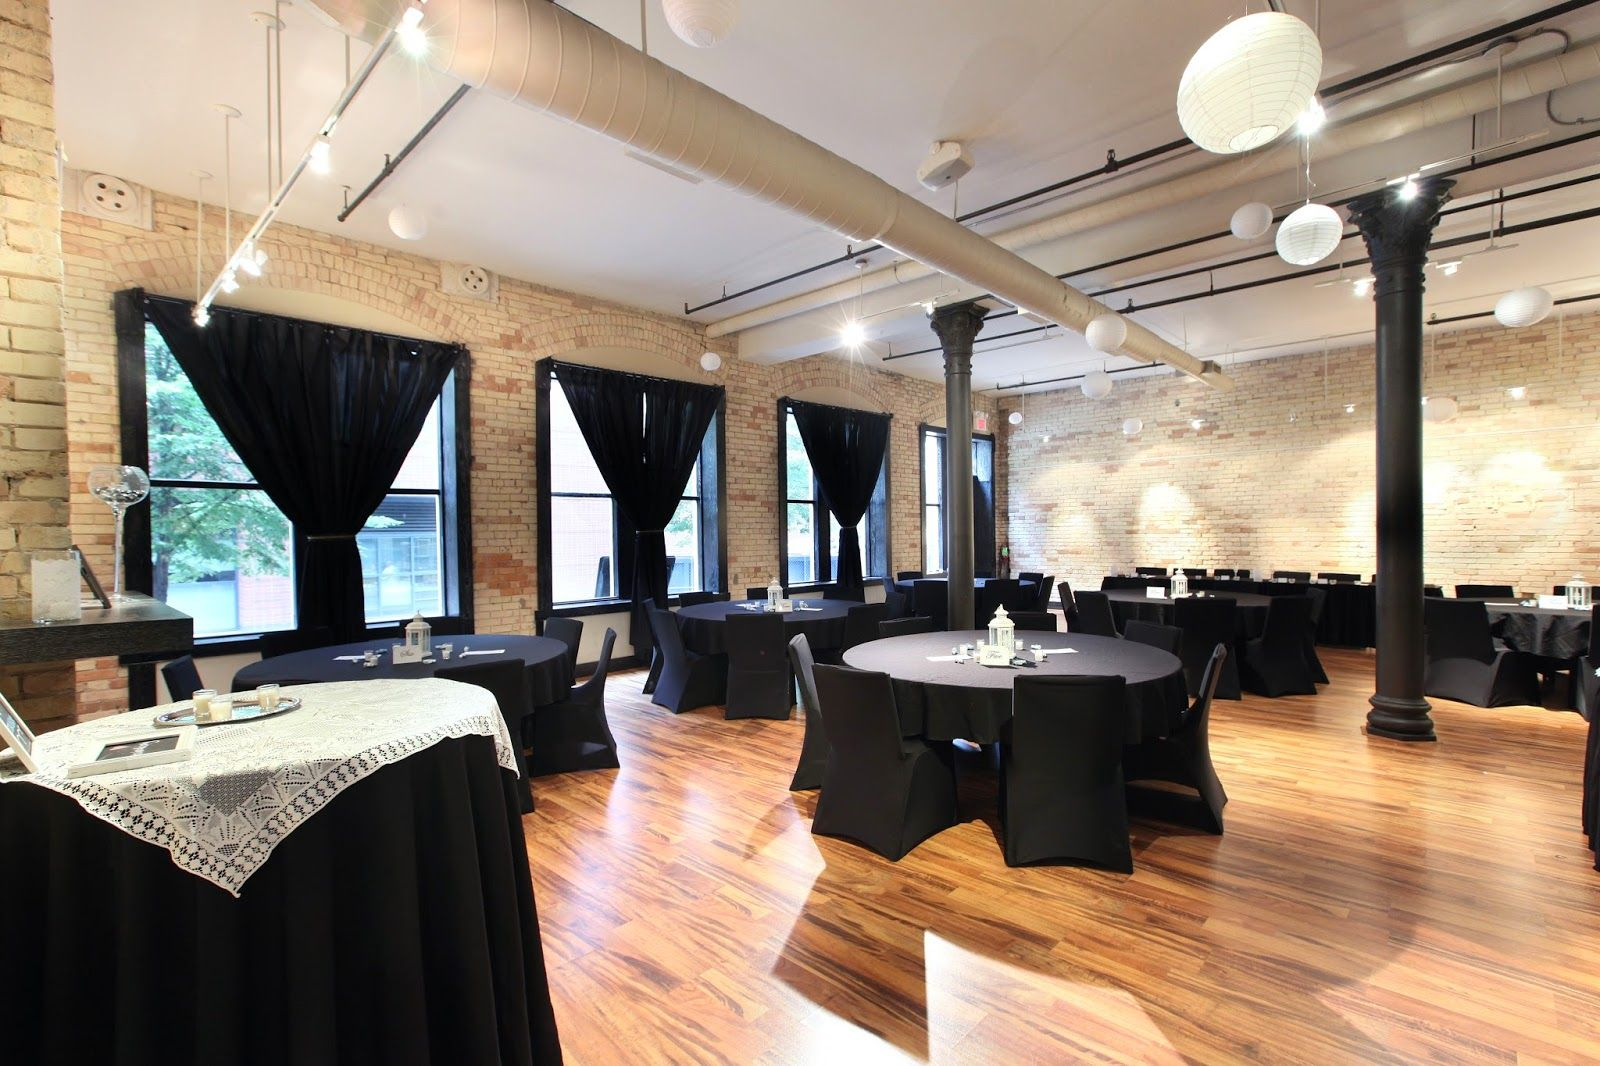 Gorgeous space available for event rentals from ceremonies to intimate receptions.